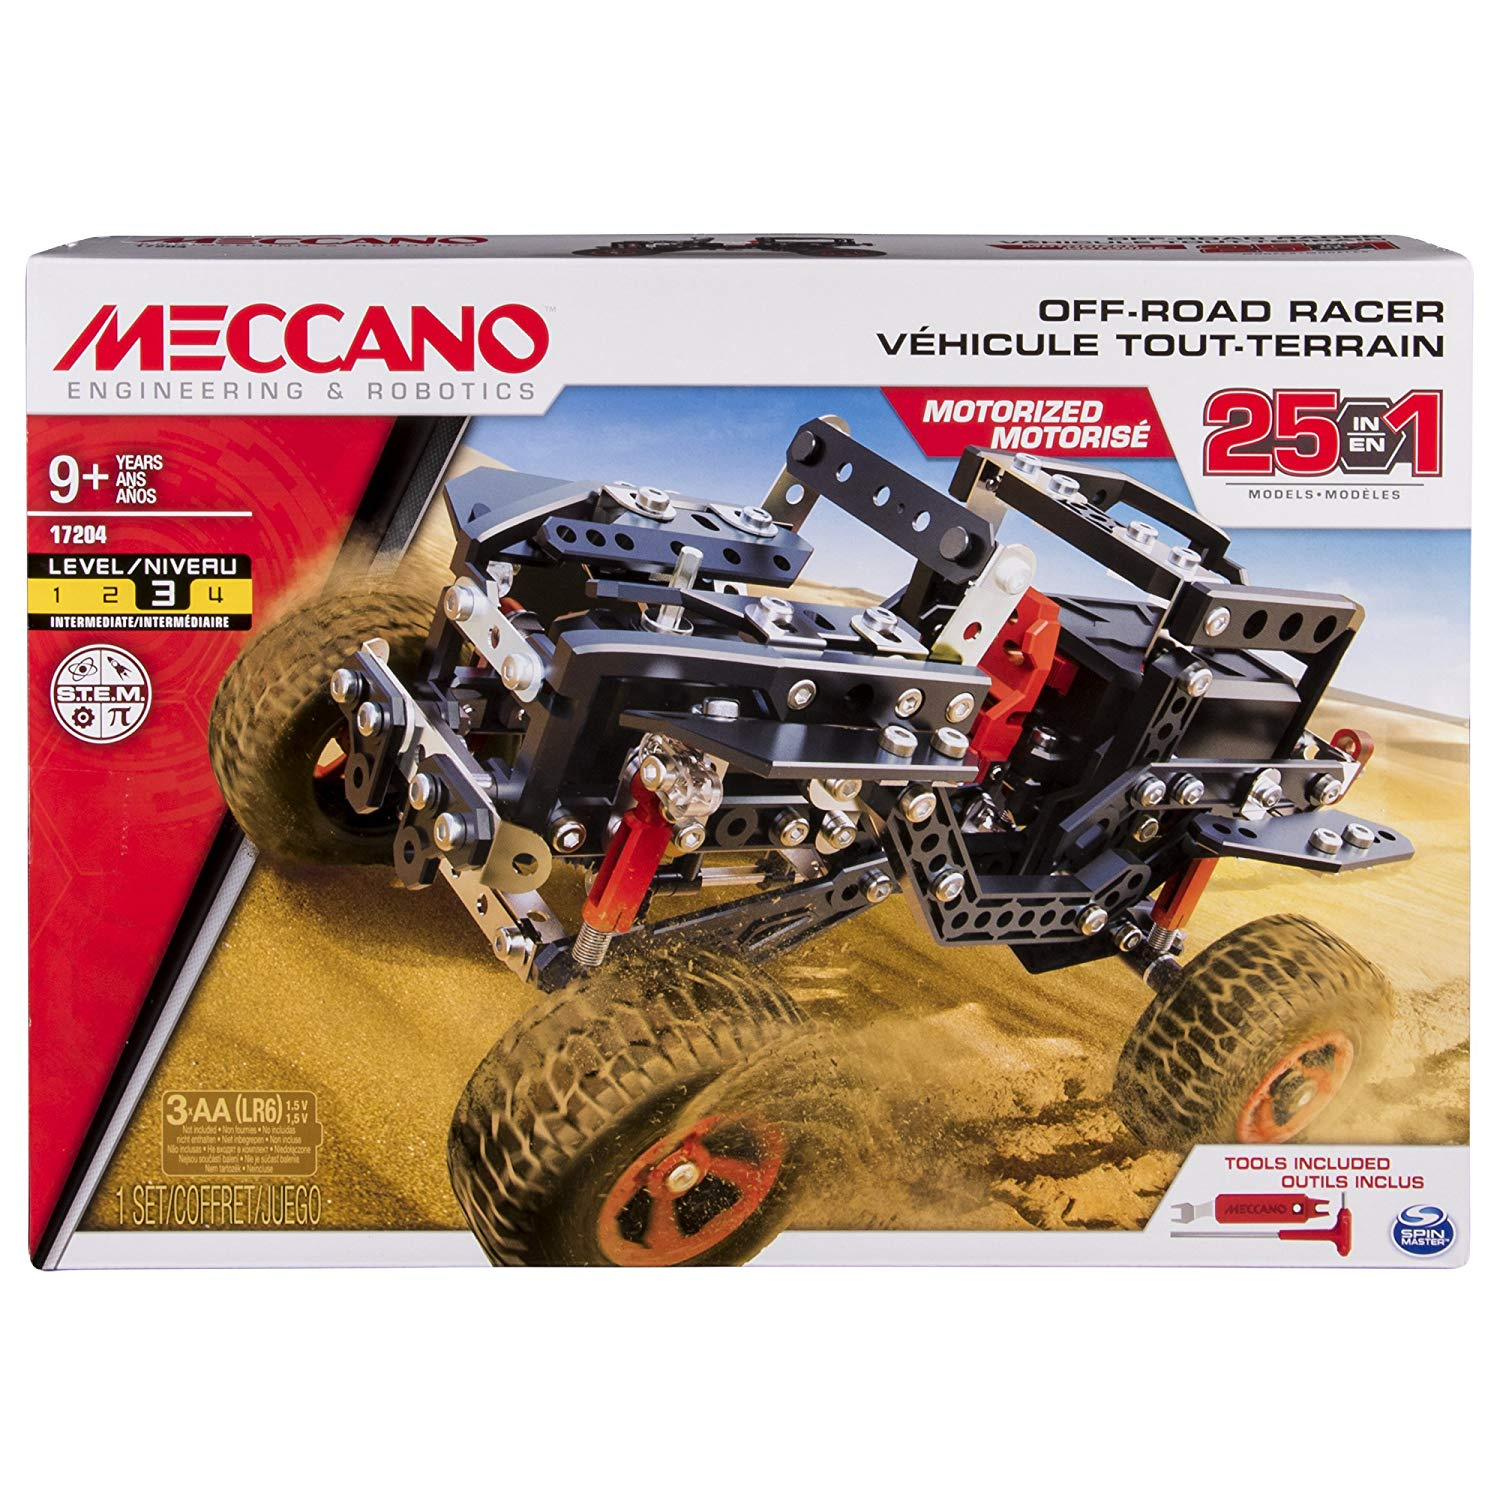 Elektrisches Spielzeug GRANDI GIOCHI Friction Powered off-road with trailer assorted colors